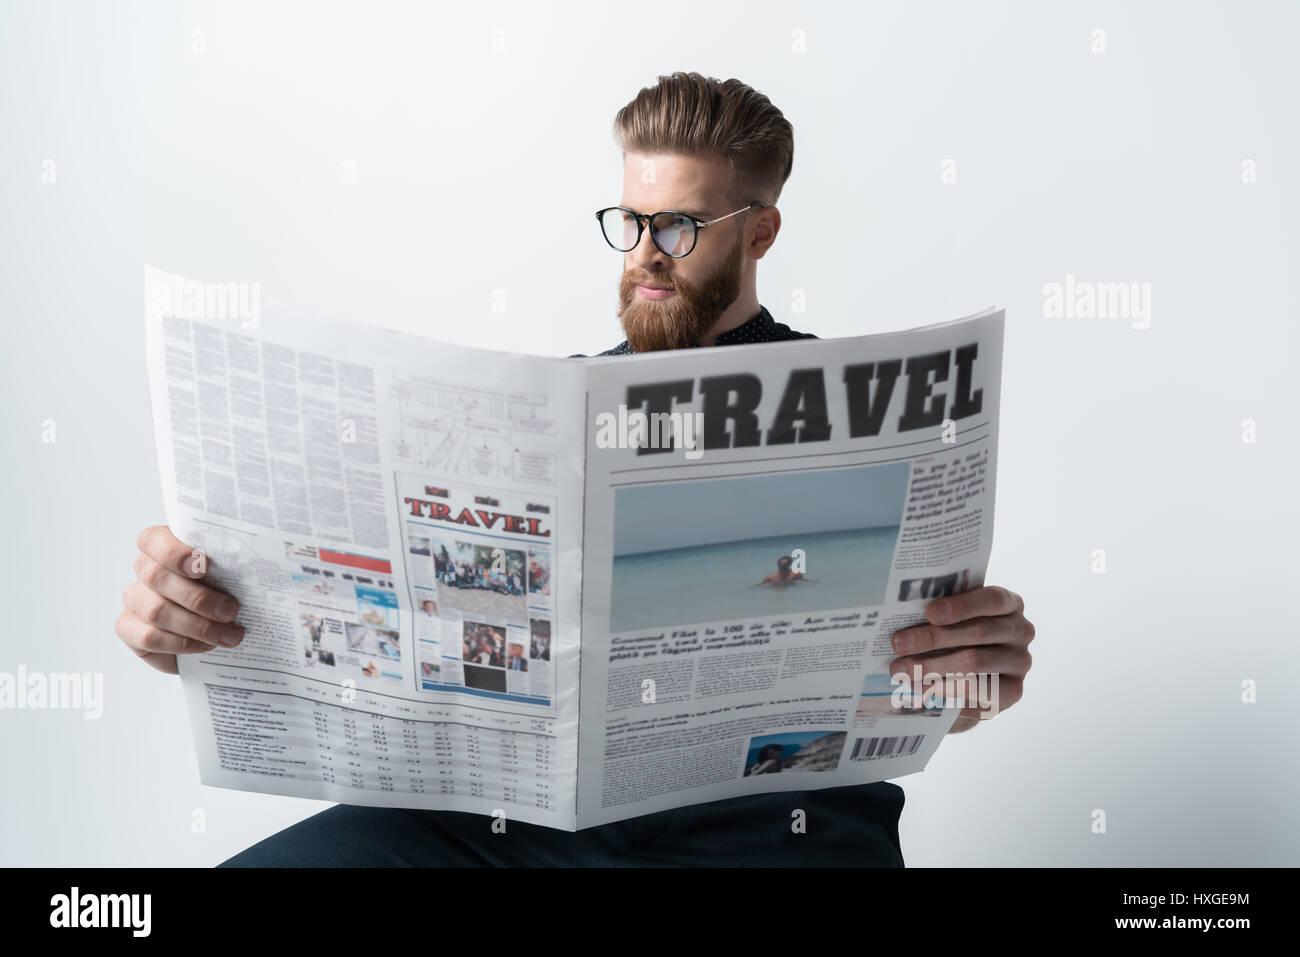 0a7188c1b9 portrait of stylish man in glasses reading newspaper on white - Stock Image